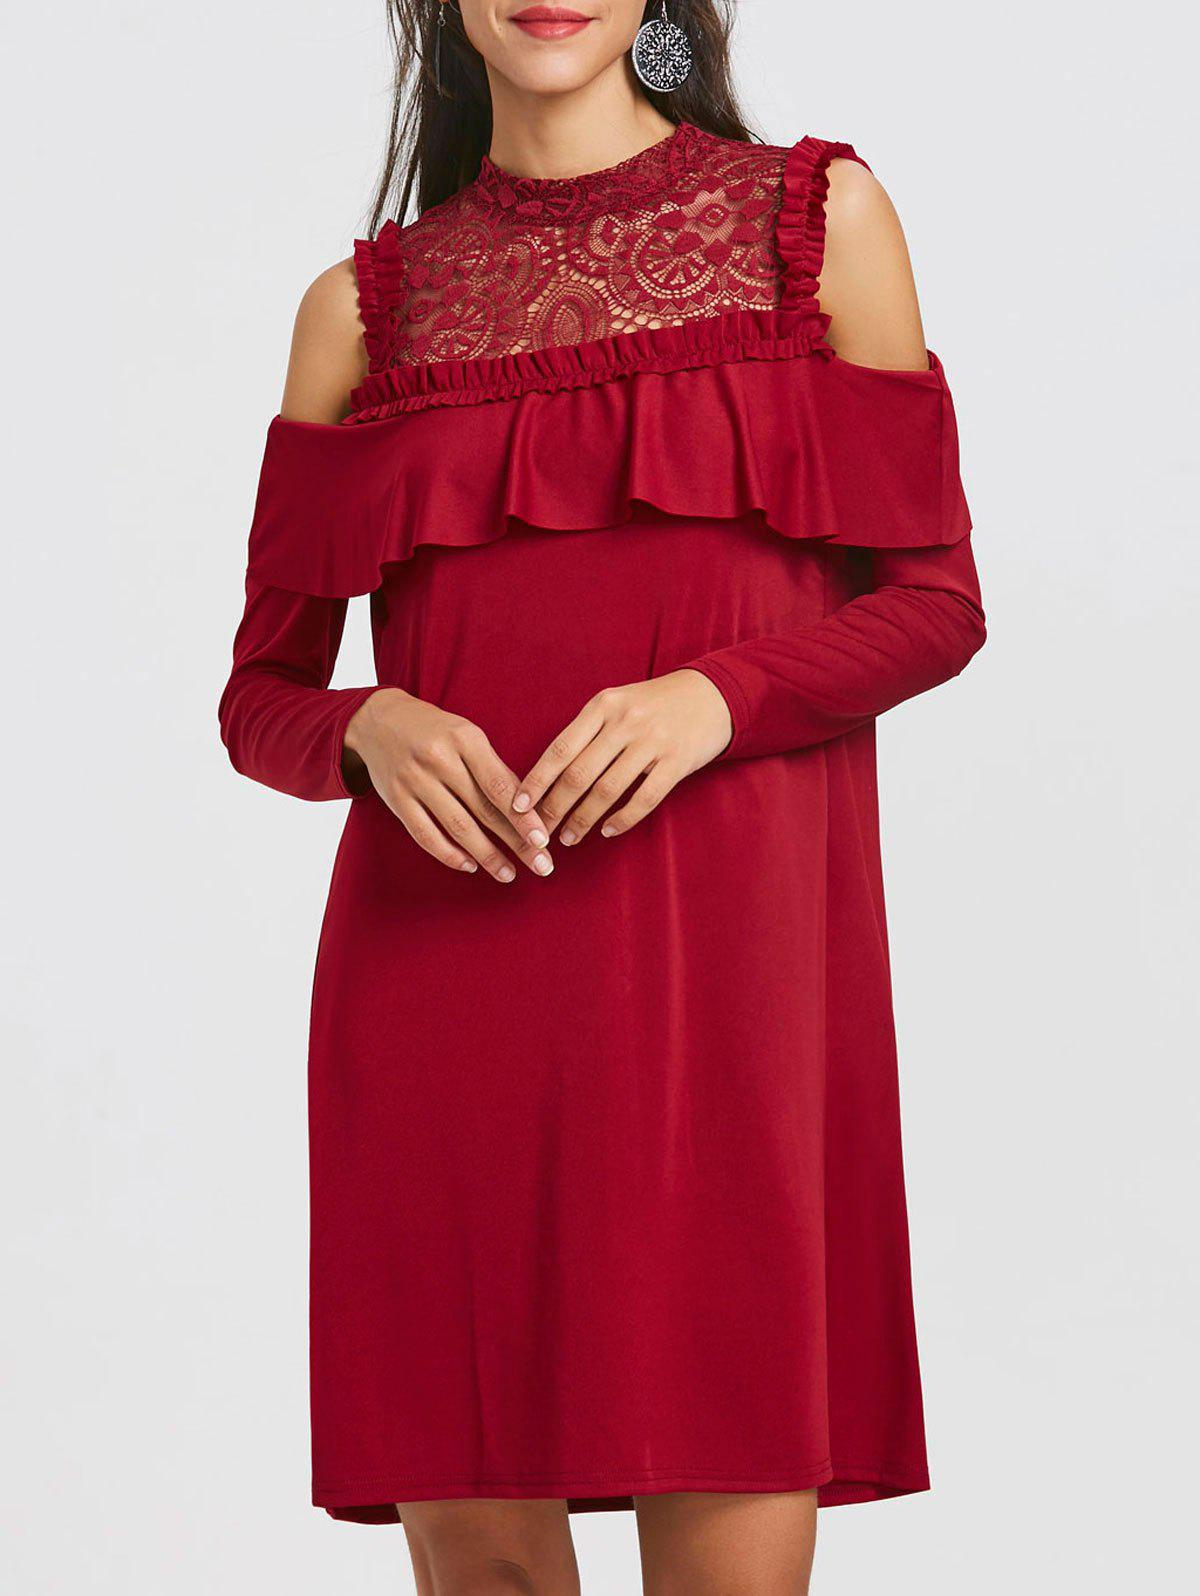 Lace Trim Open Shoulder Ruffle Dress - WINE RED S